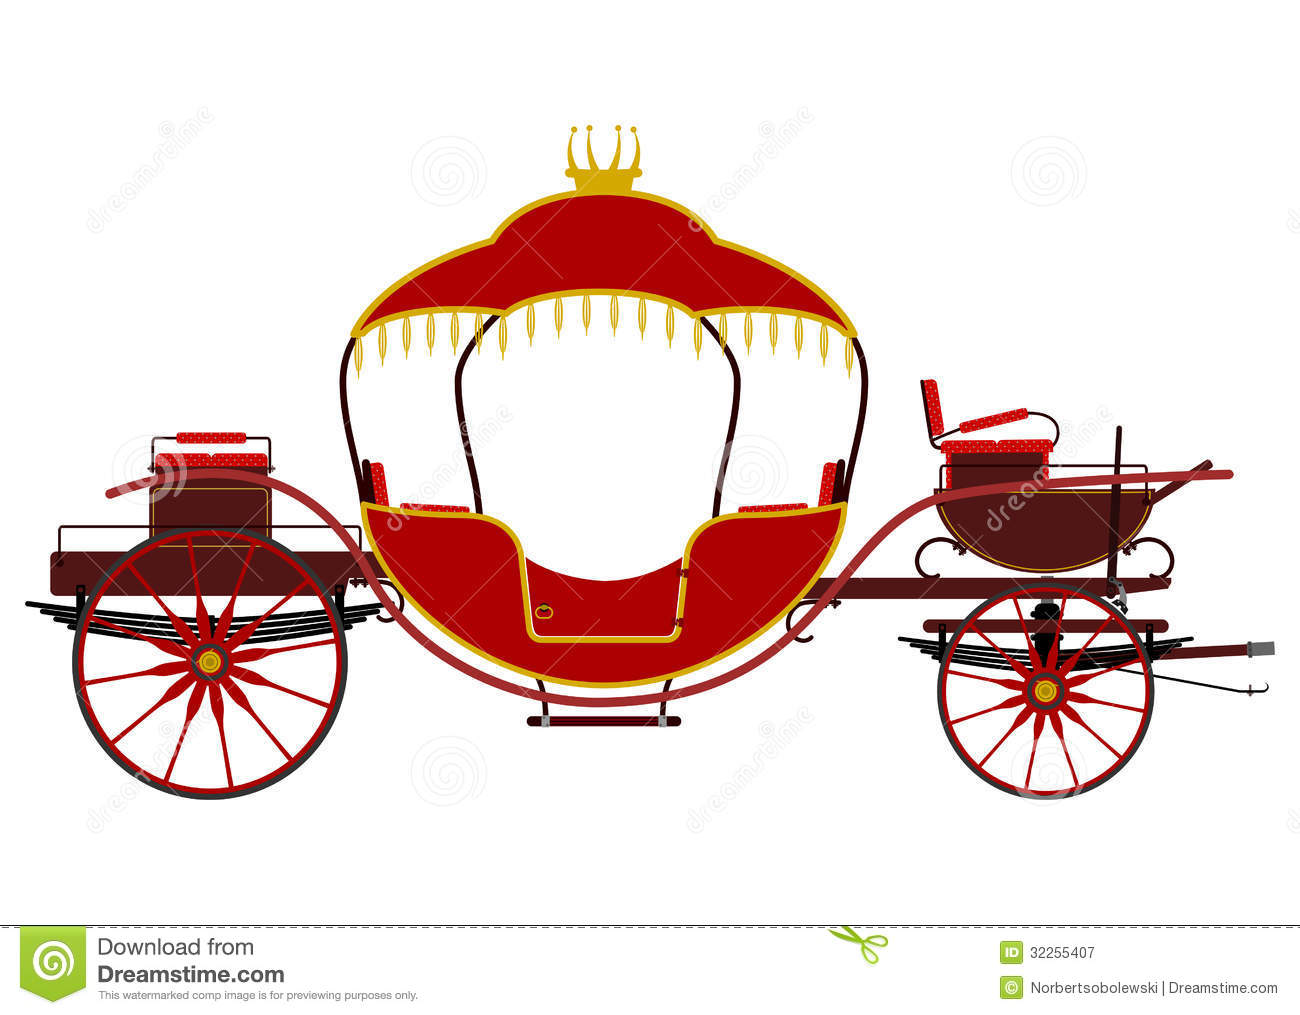 Royal carriage in silhouette royalty free stock vector art - Vintage Carriage Royalty Free Stock Photography Image